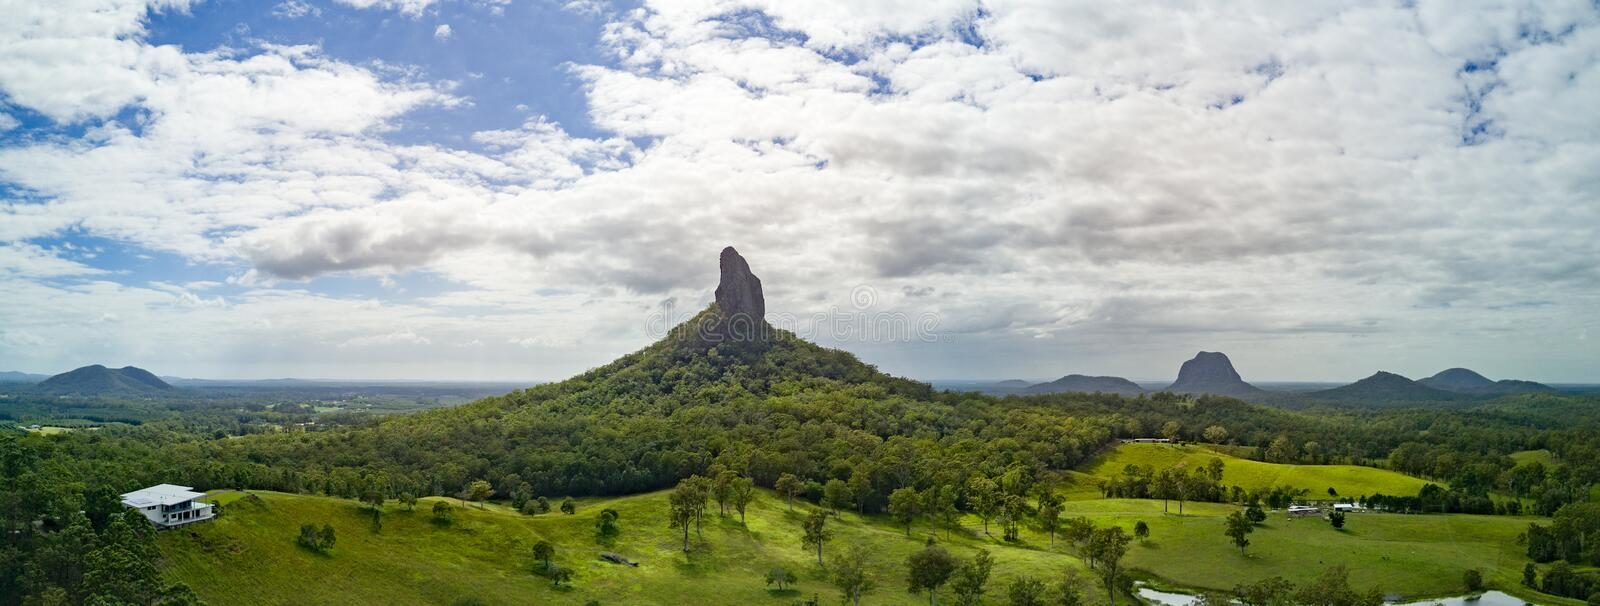 Glasshouse Mountains. Aerial view of the Glasshouse Mountains in Queensland Australia stock photo